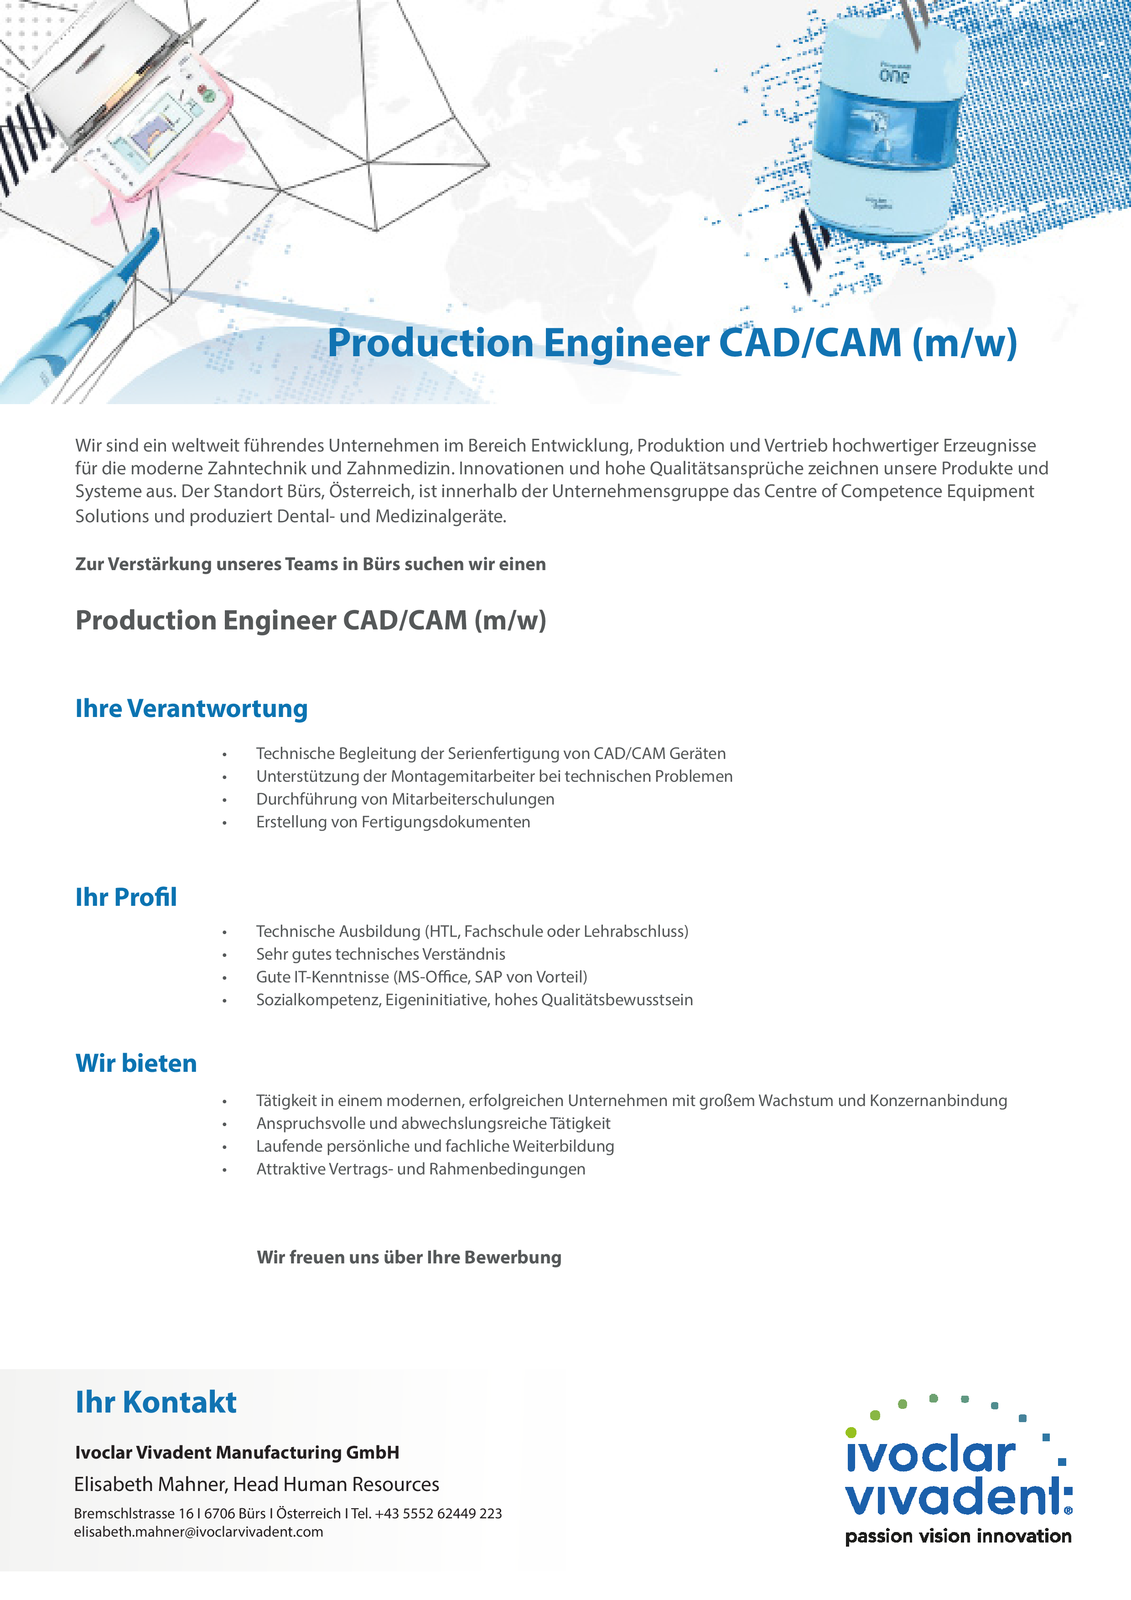 PRODUCTION ENGINEER CAD/CAM (m/w)